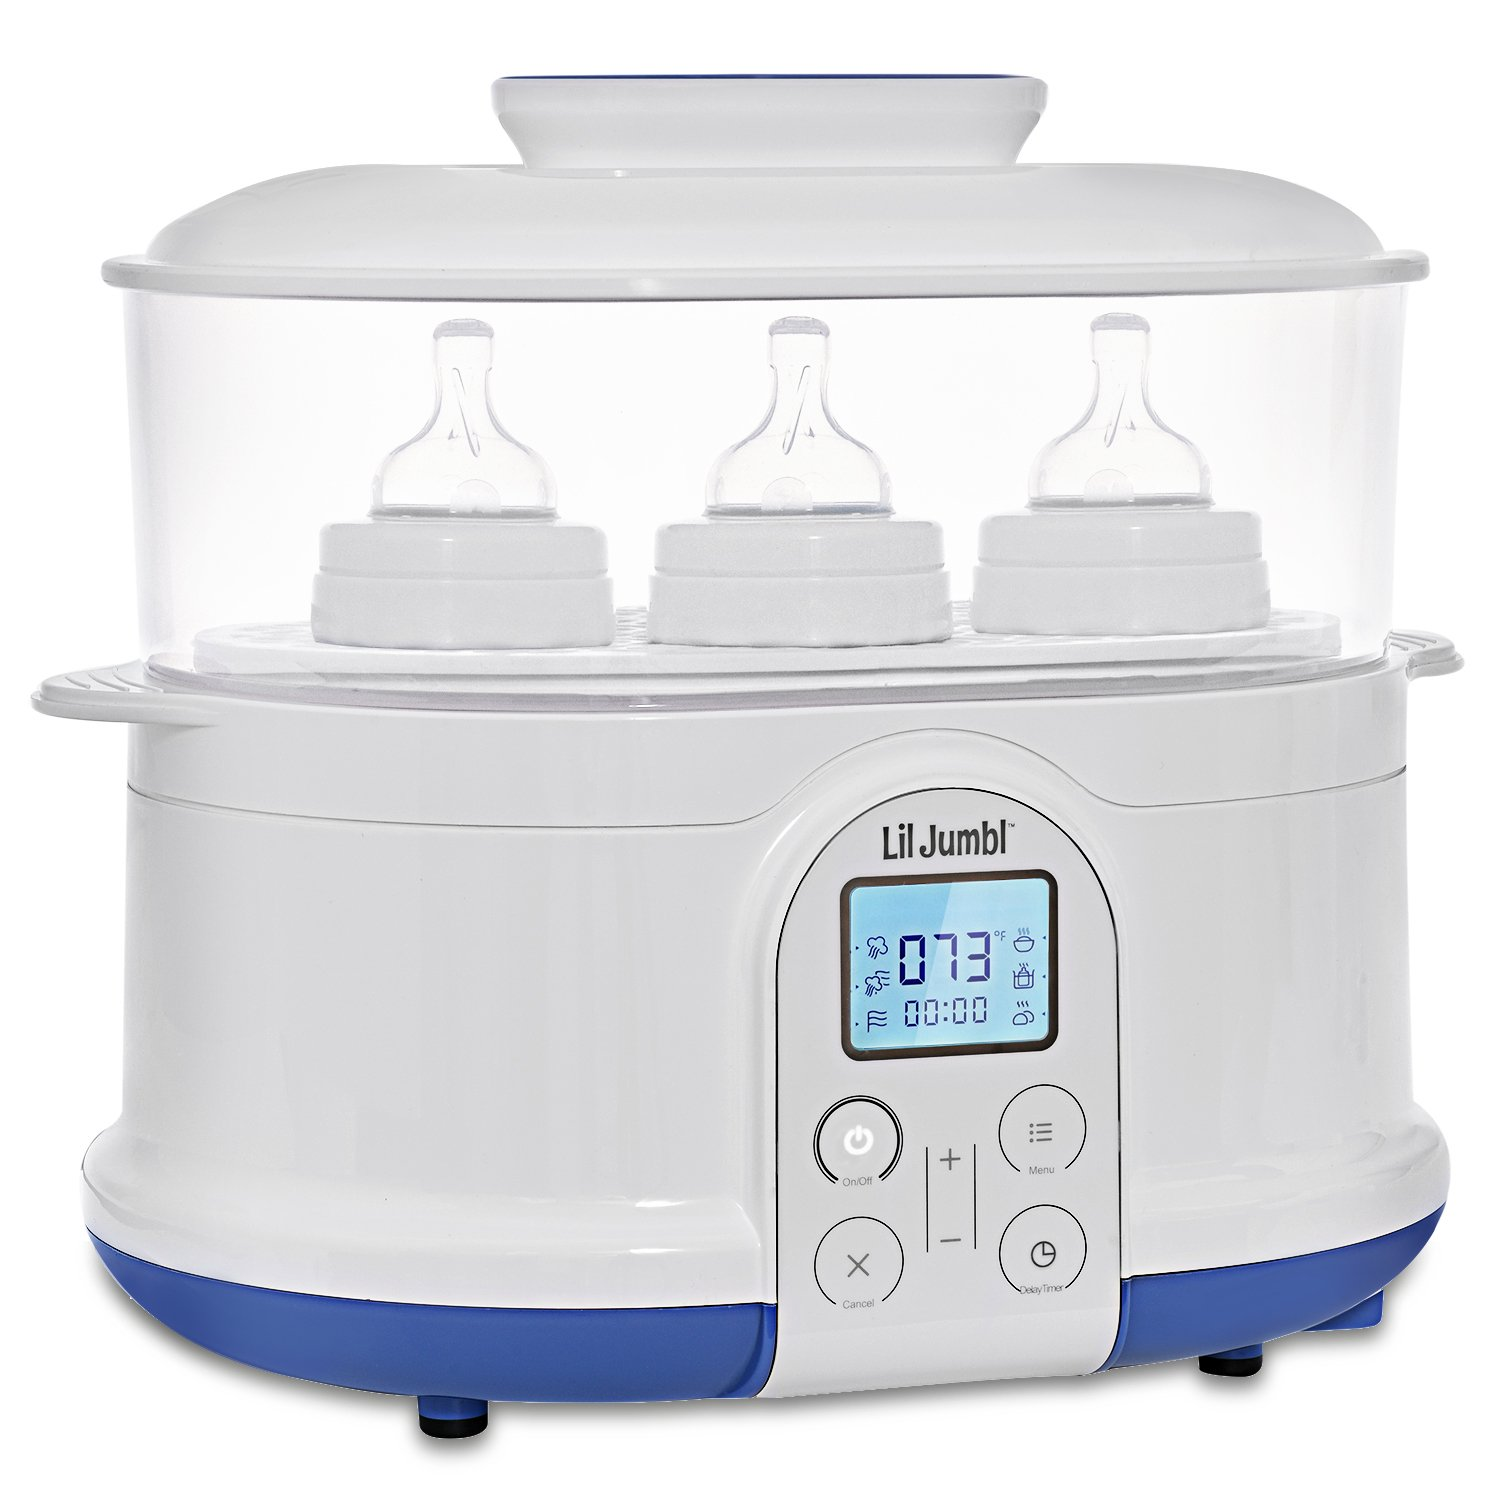 Lil' Jumbl 4-in-1 Bottle Sterilizer Warmer & Dryer w/ Food Steamer Function - Digital LCD Display with Custom Heat Settings Lil' Jumbl